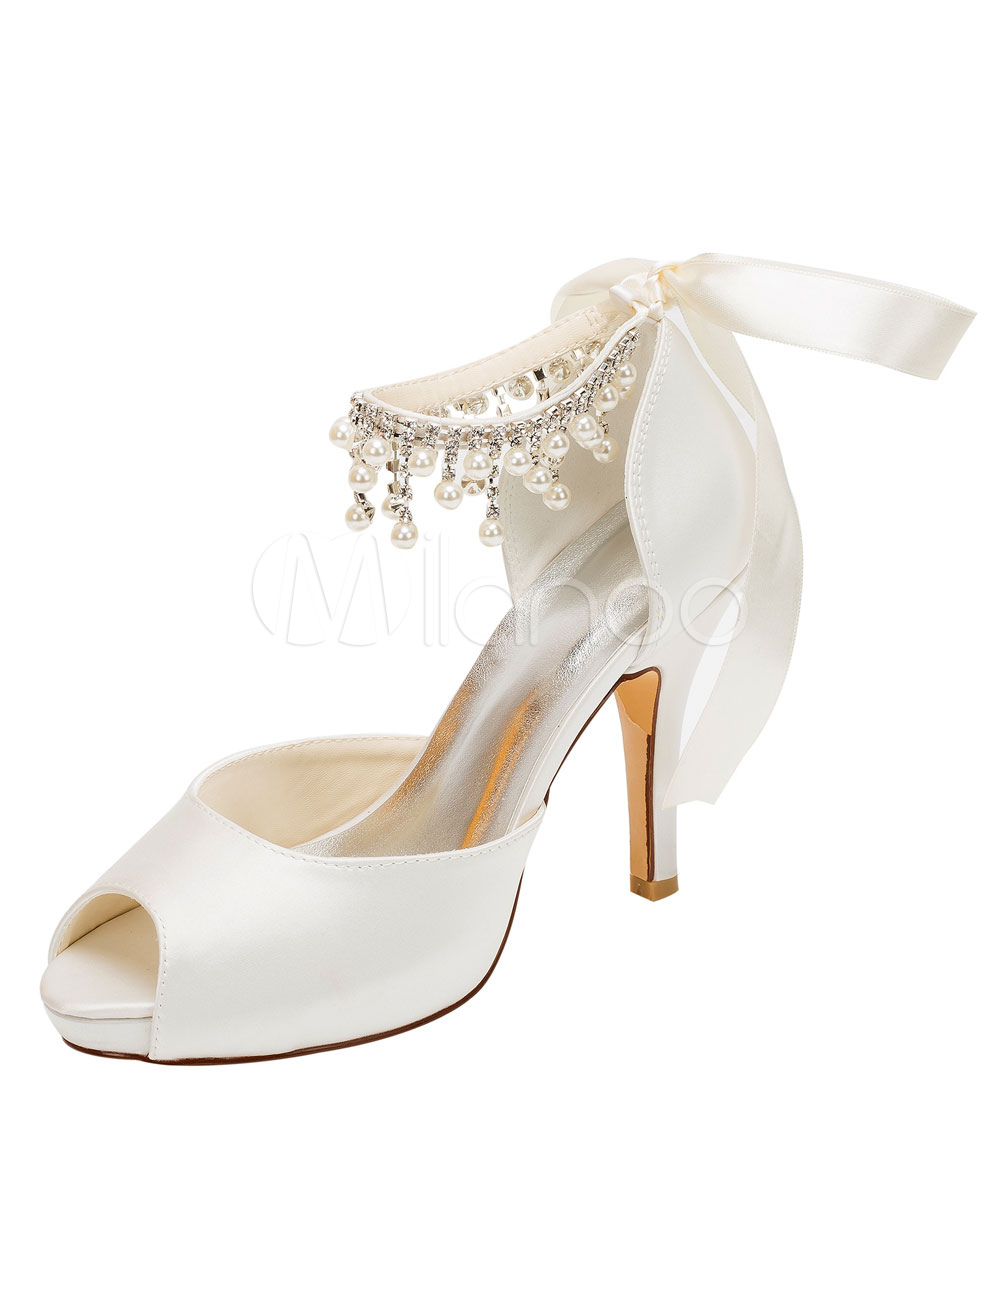 Ivory Wedding Shoes Satin High Heels Peep Toe Pearls Lace Up Bridal Shoes